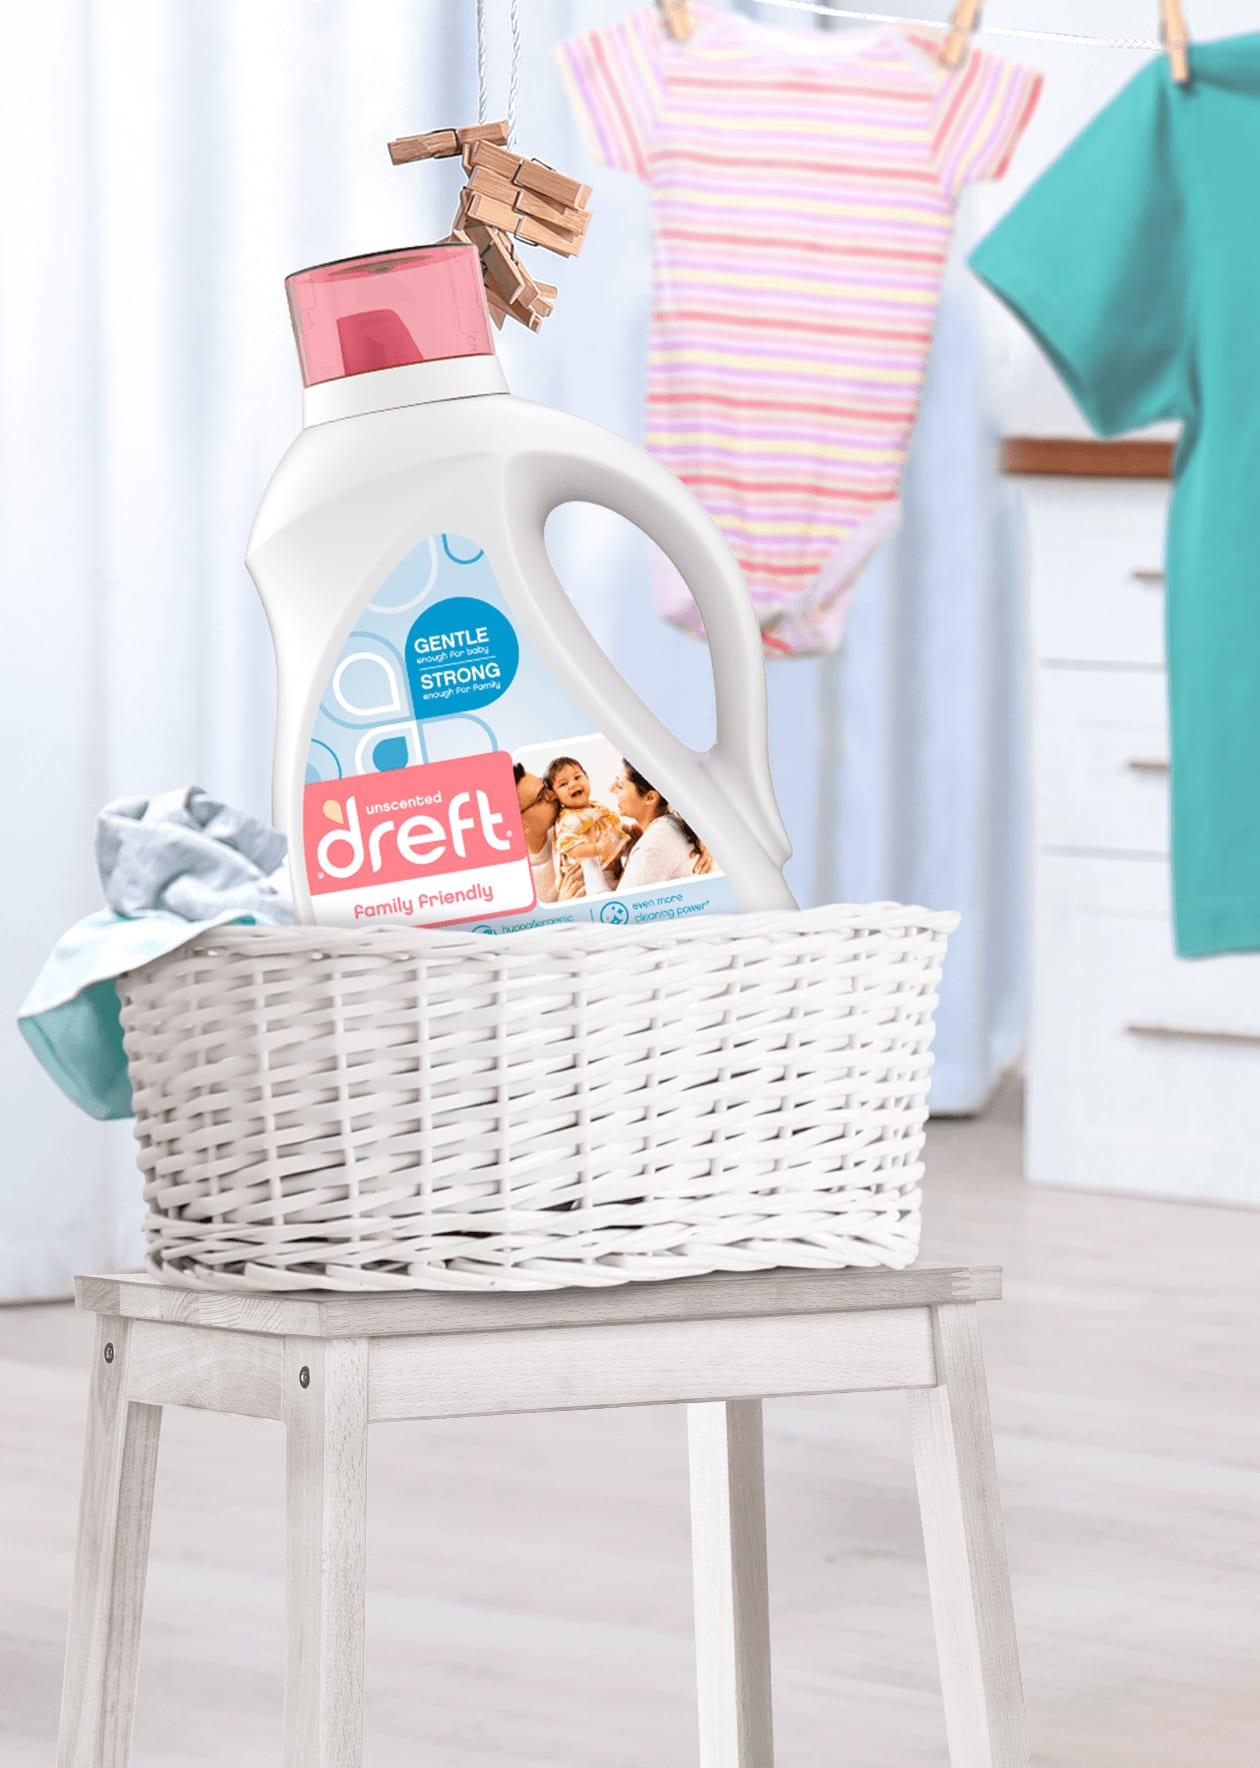 Dreft Family Friendly Laundry Detergent is perfect for family laundry